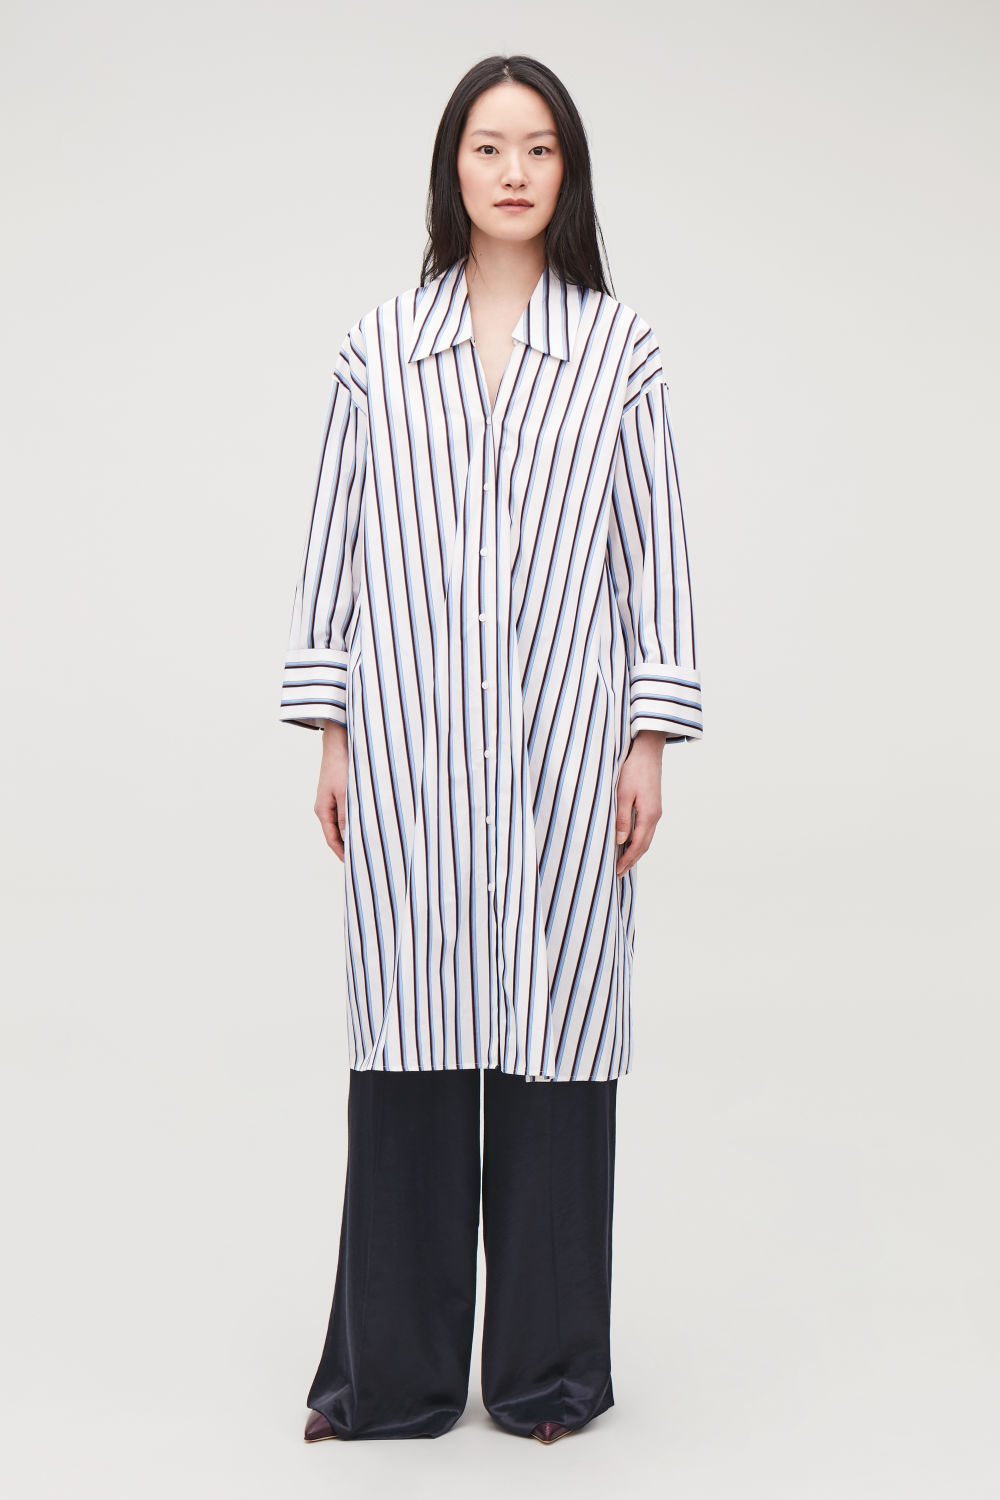 코스 COS STRIPED MID-LENGTH SHIRT DRESS,White \/ blue \/ brown